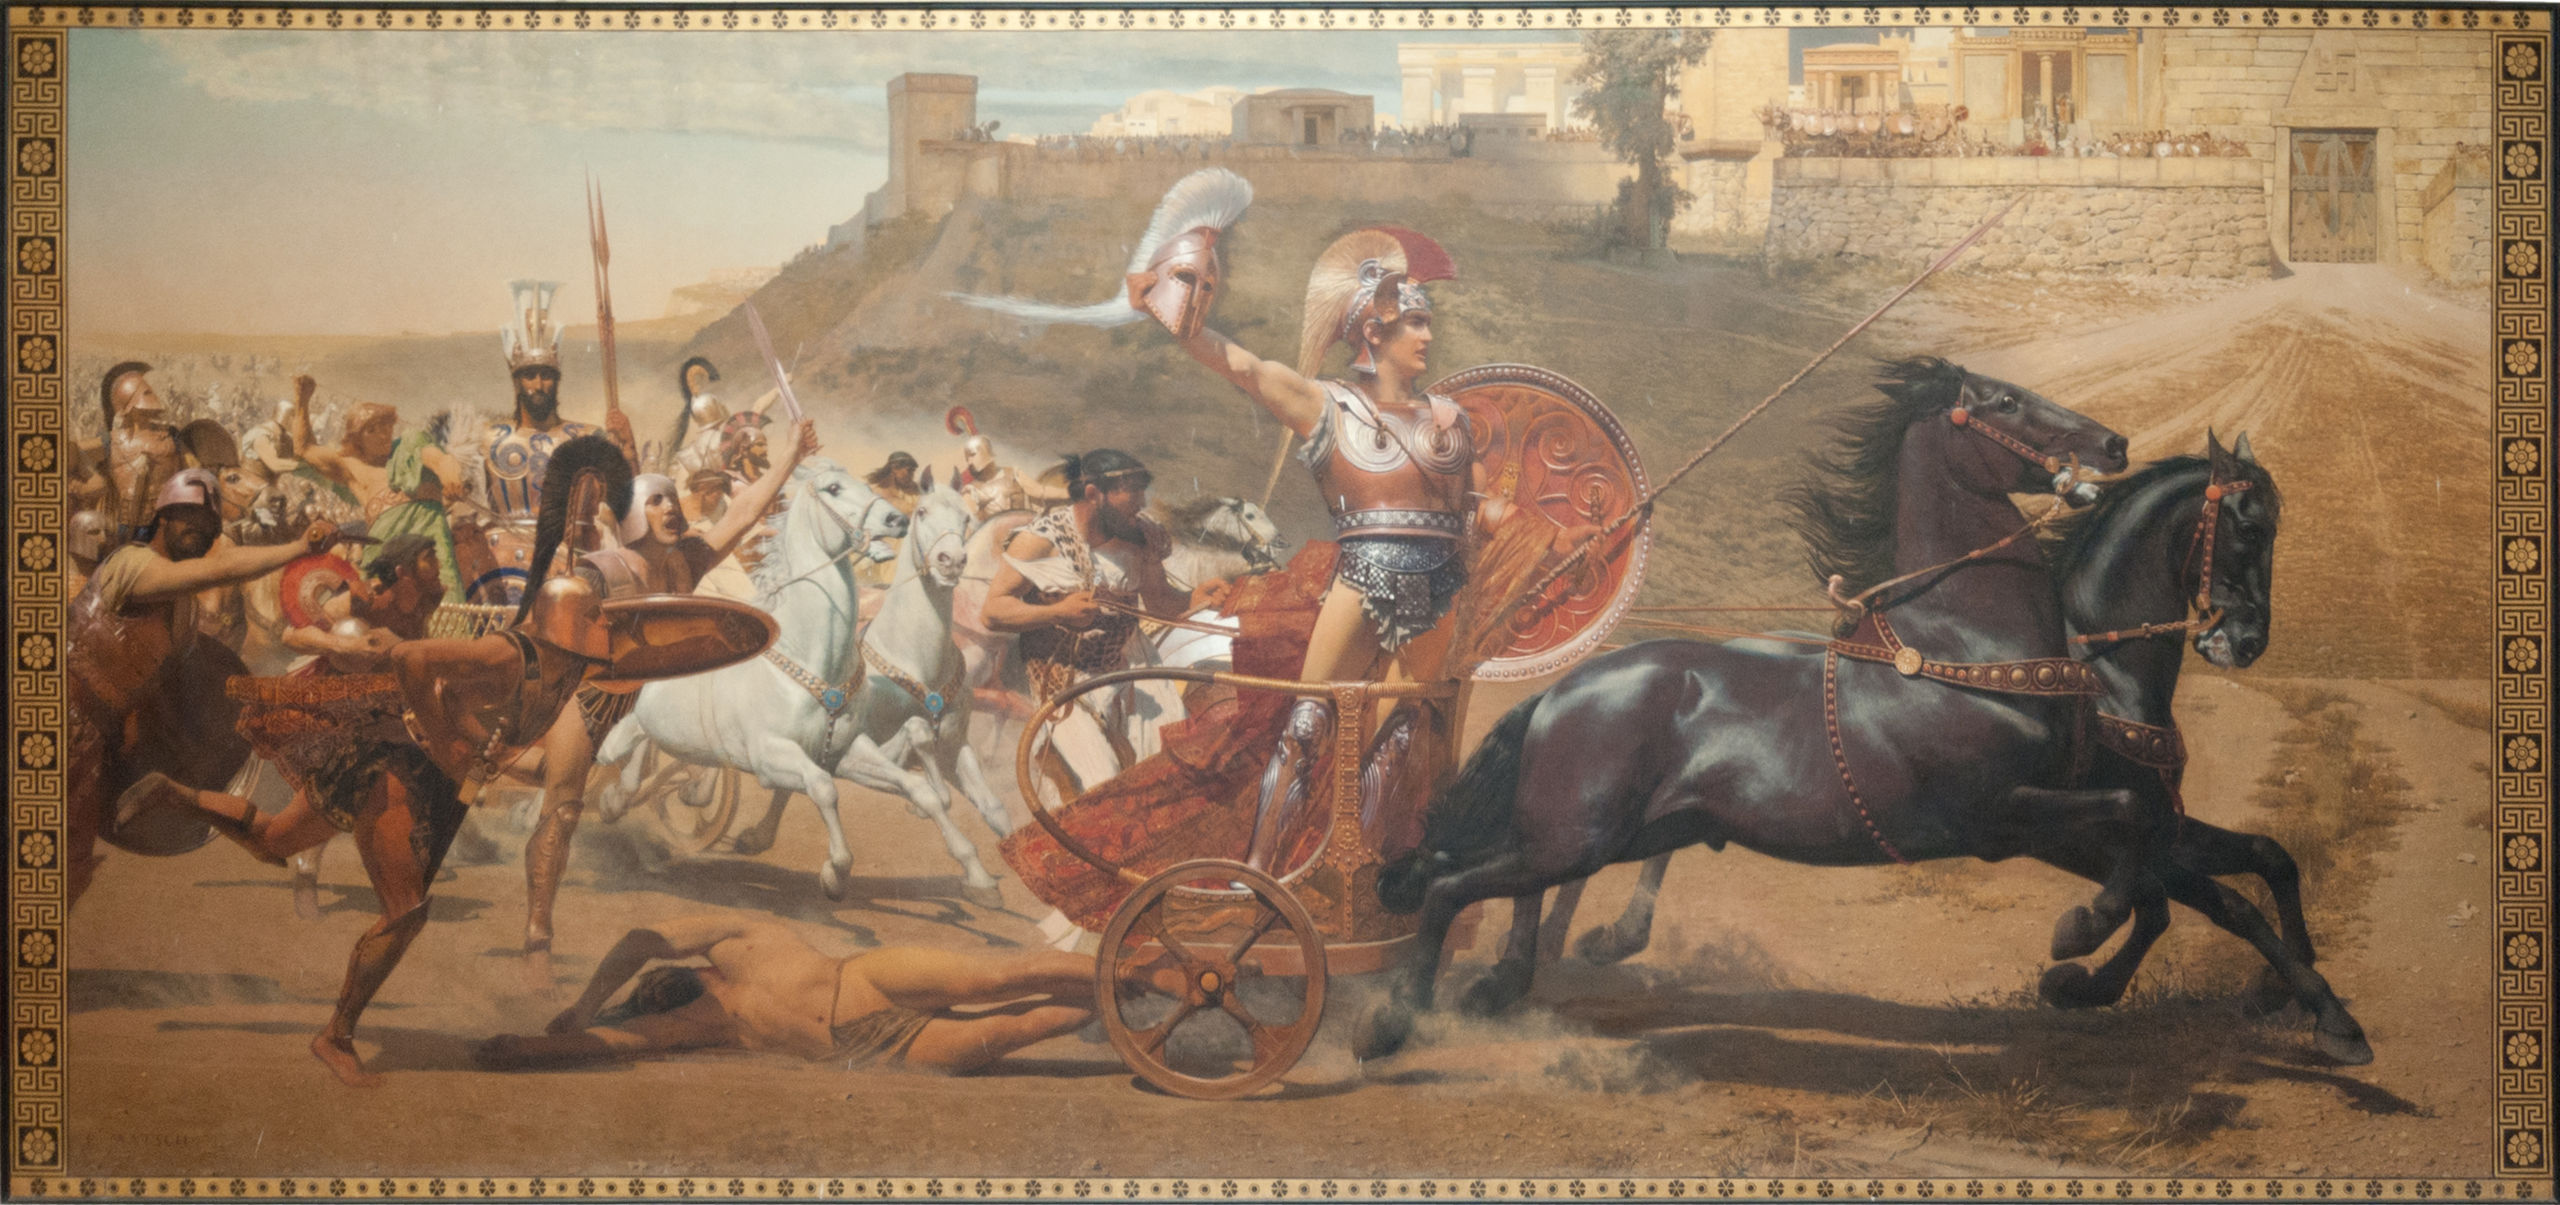 The__Triumph_of_Achilles__fresco,_in_Corfu_Achilleion